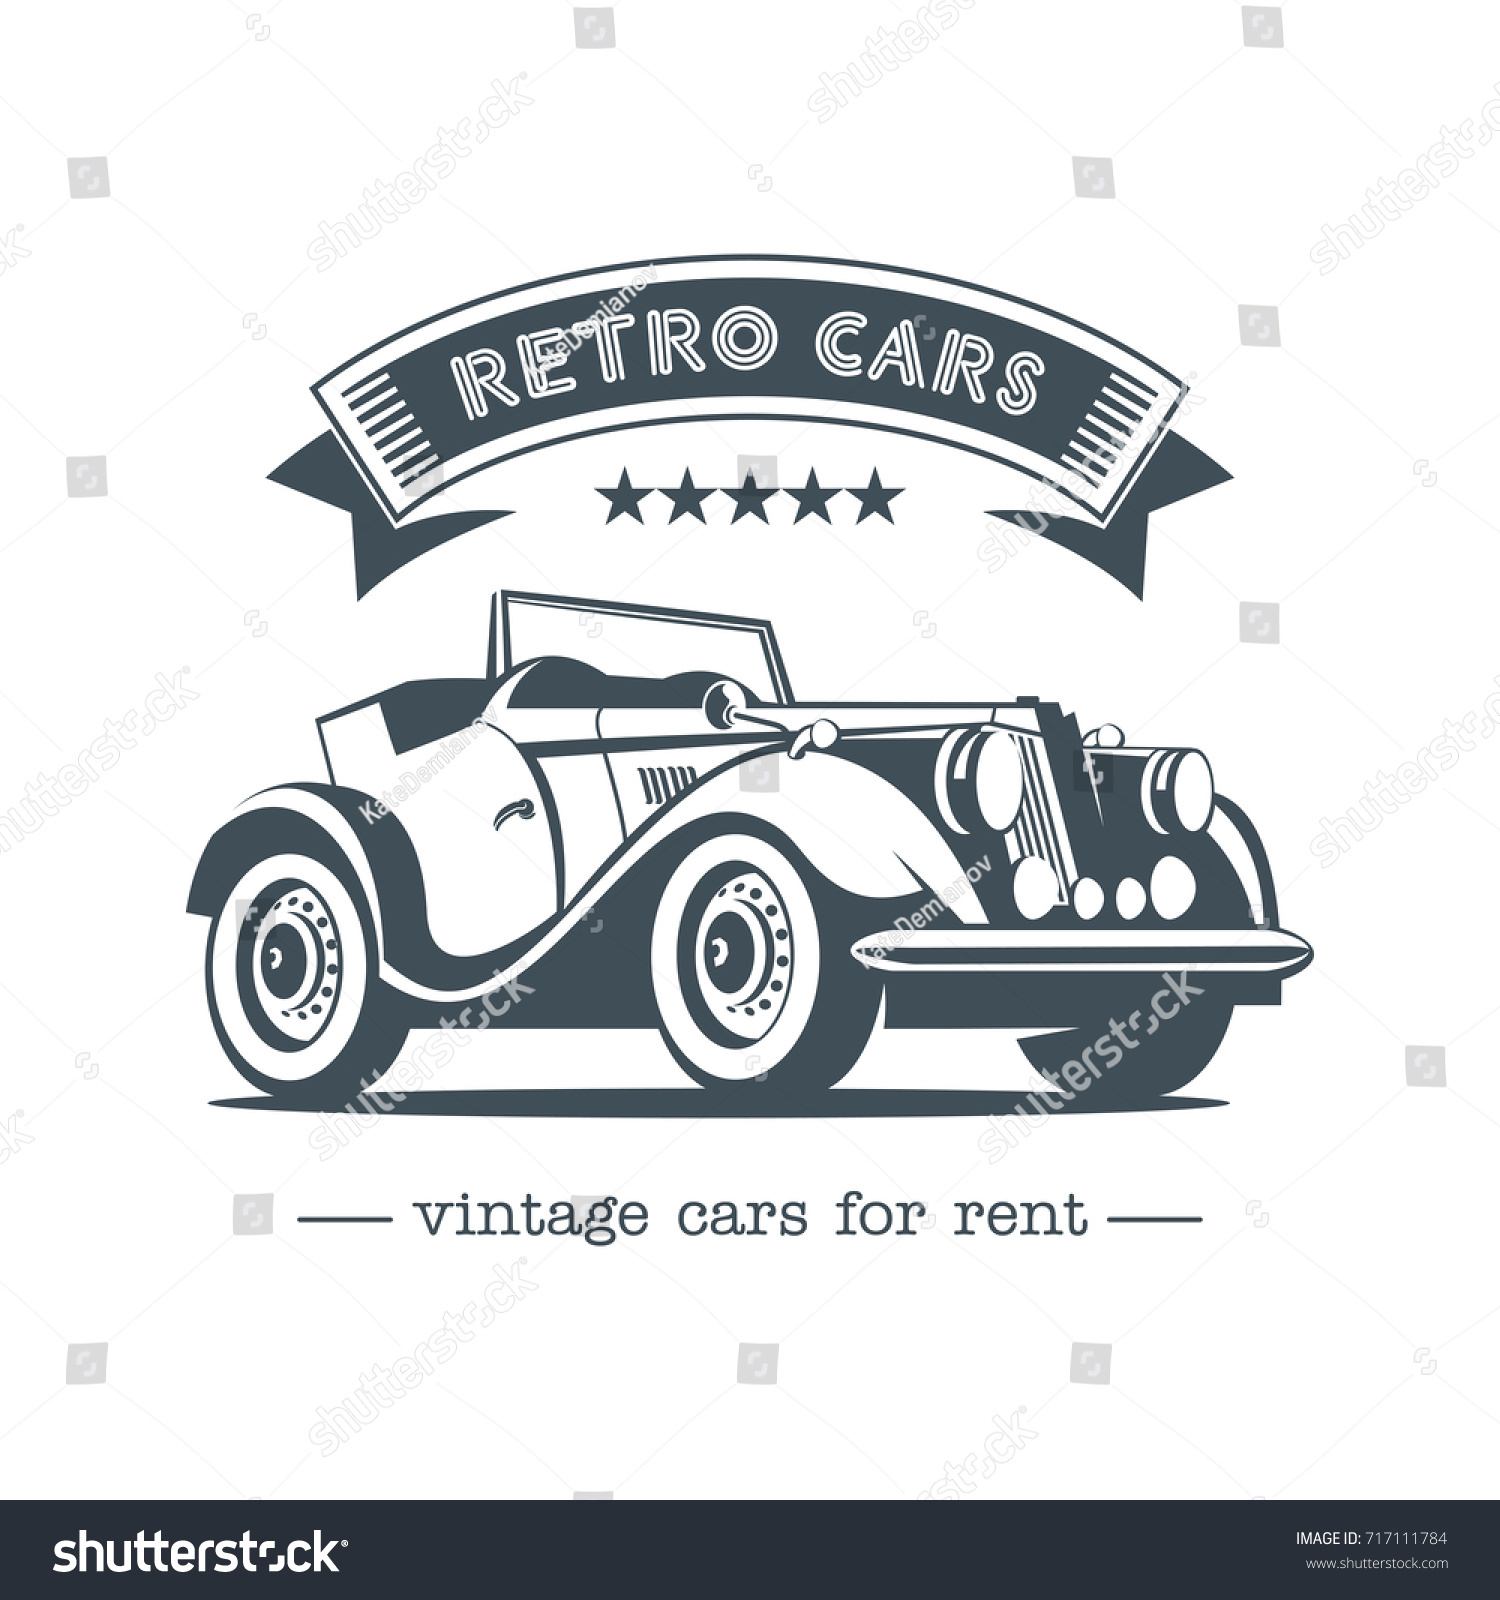 Vintage Car Retro Cars Rent Monochrome Stock Vector (2018) 717111784 ...